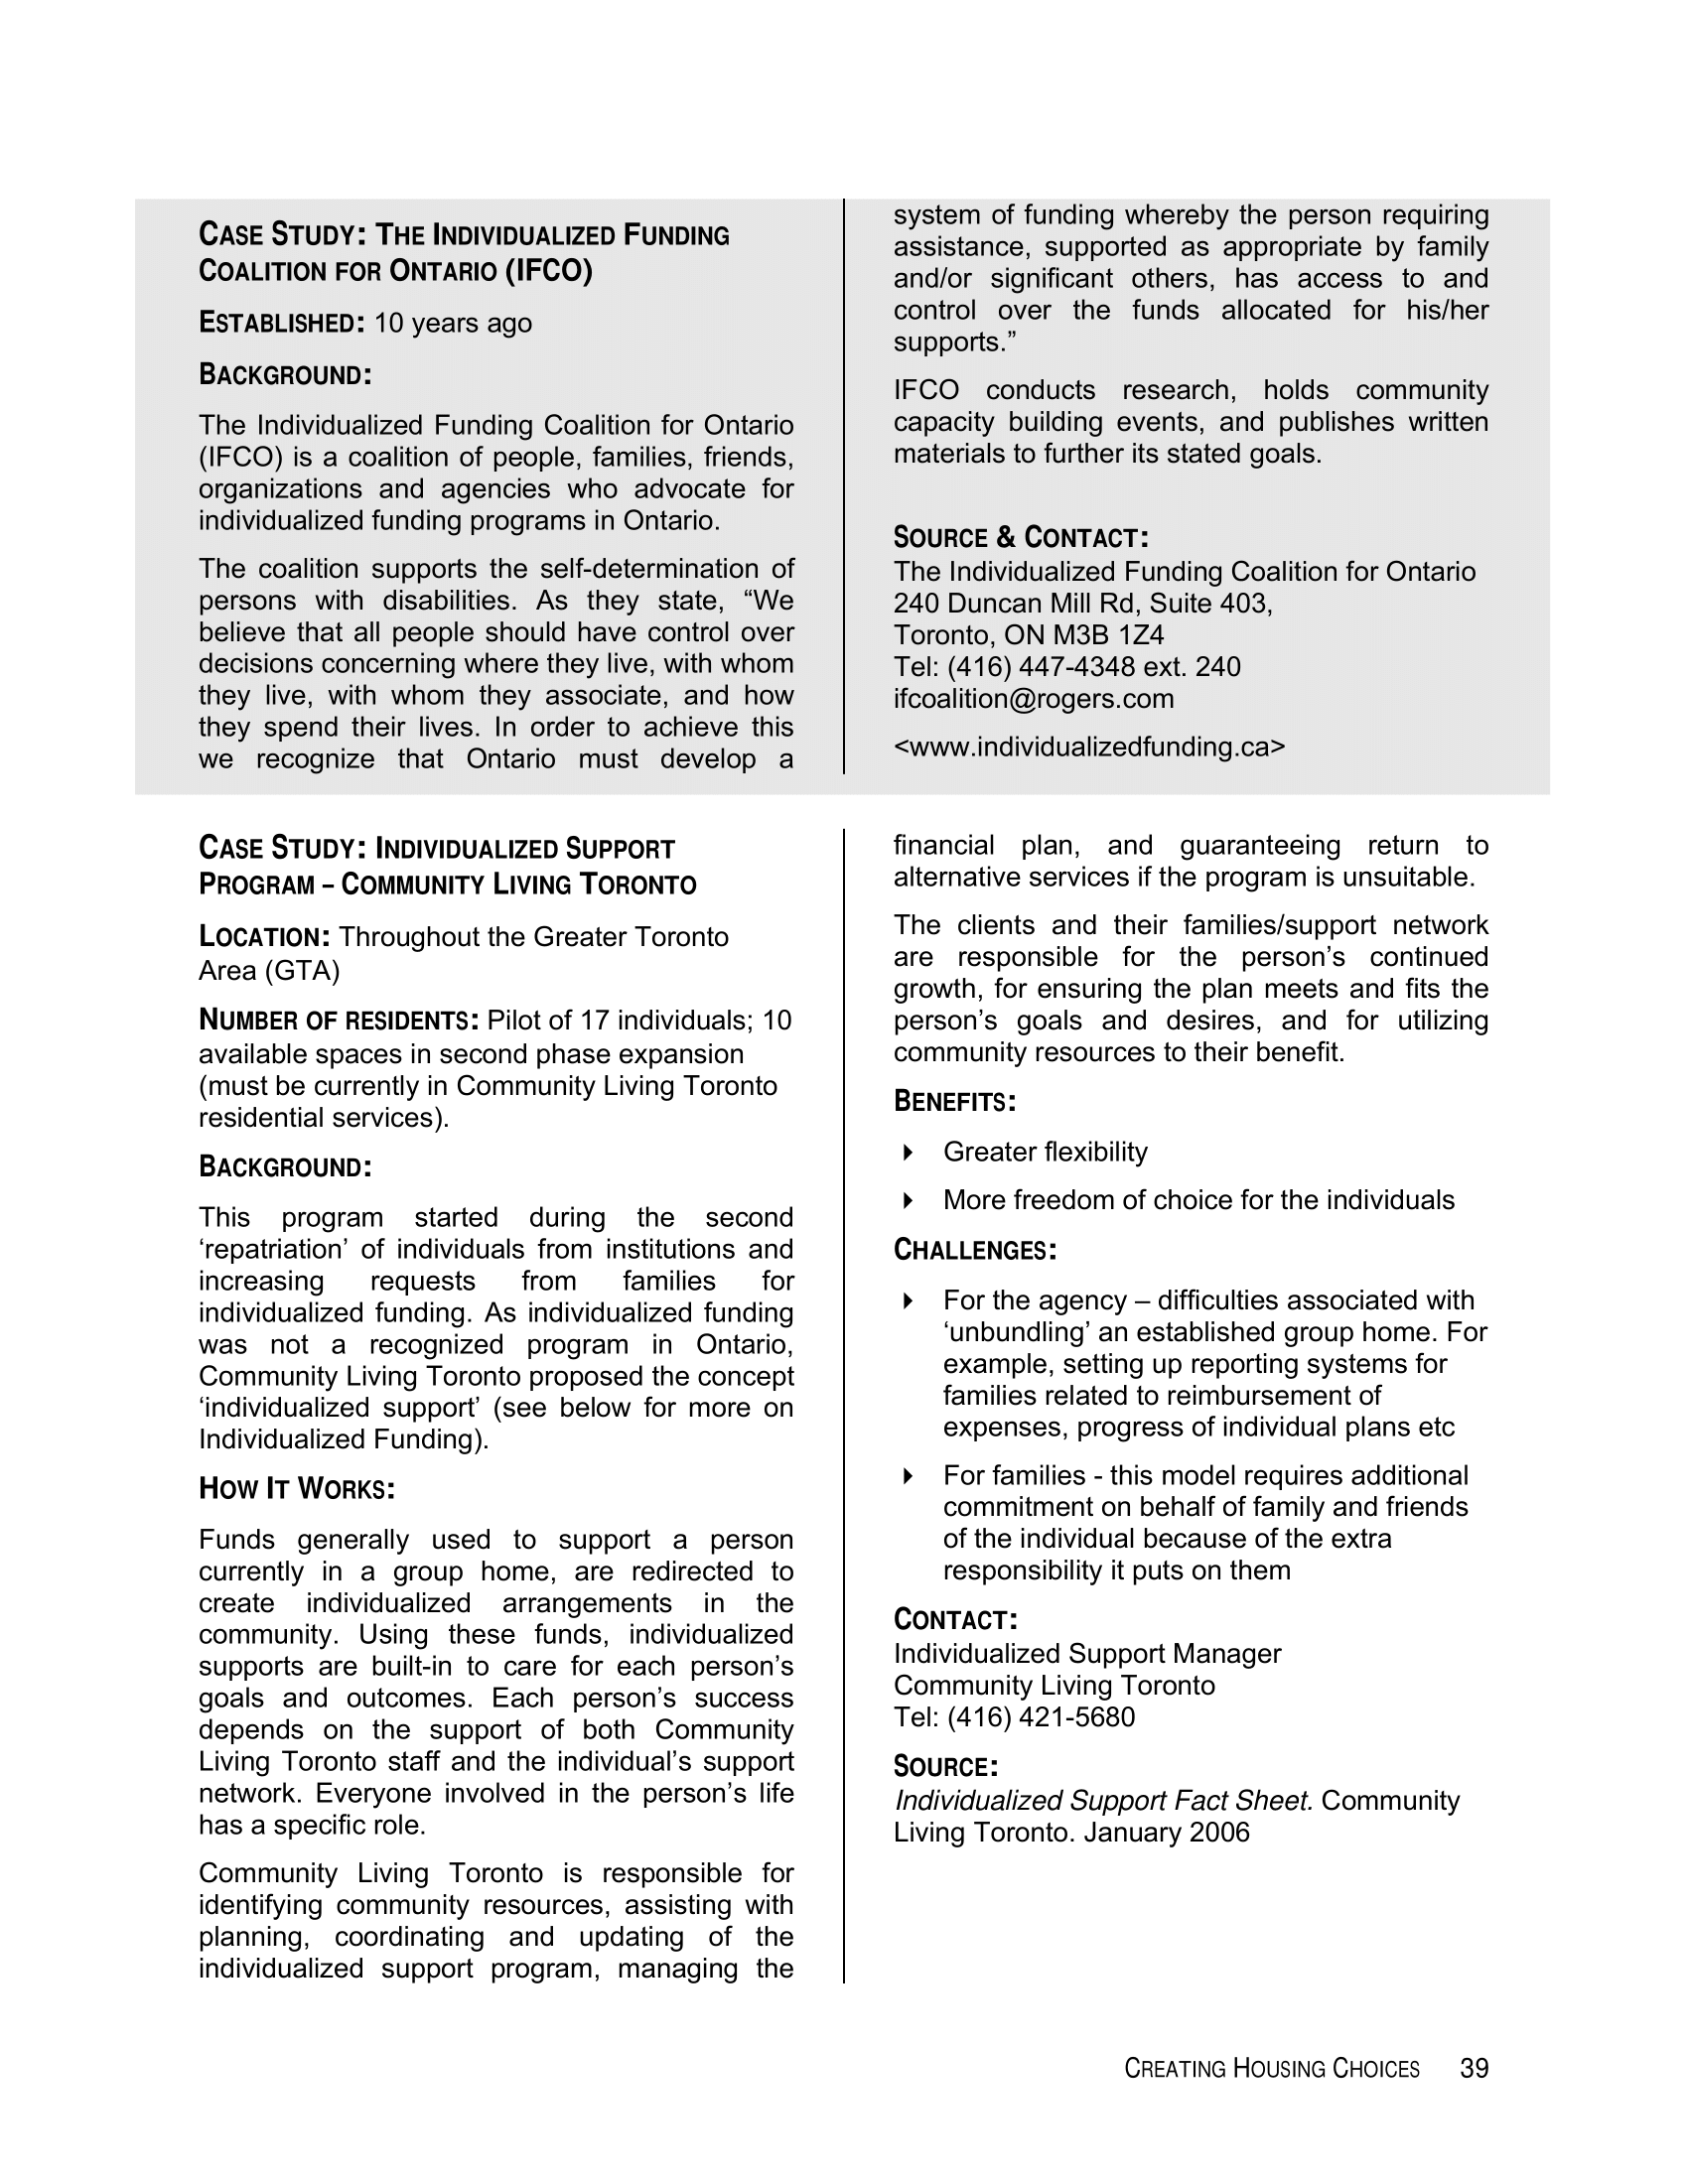 Creating Housing Choices - 2006-40.png